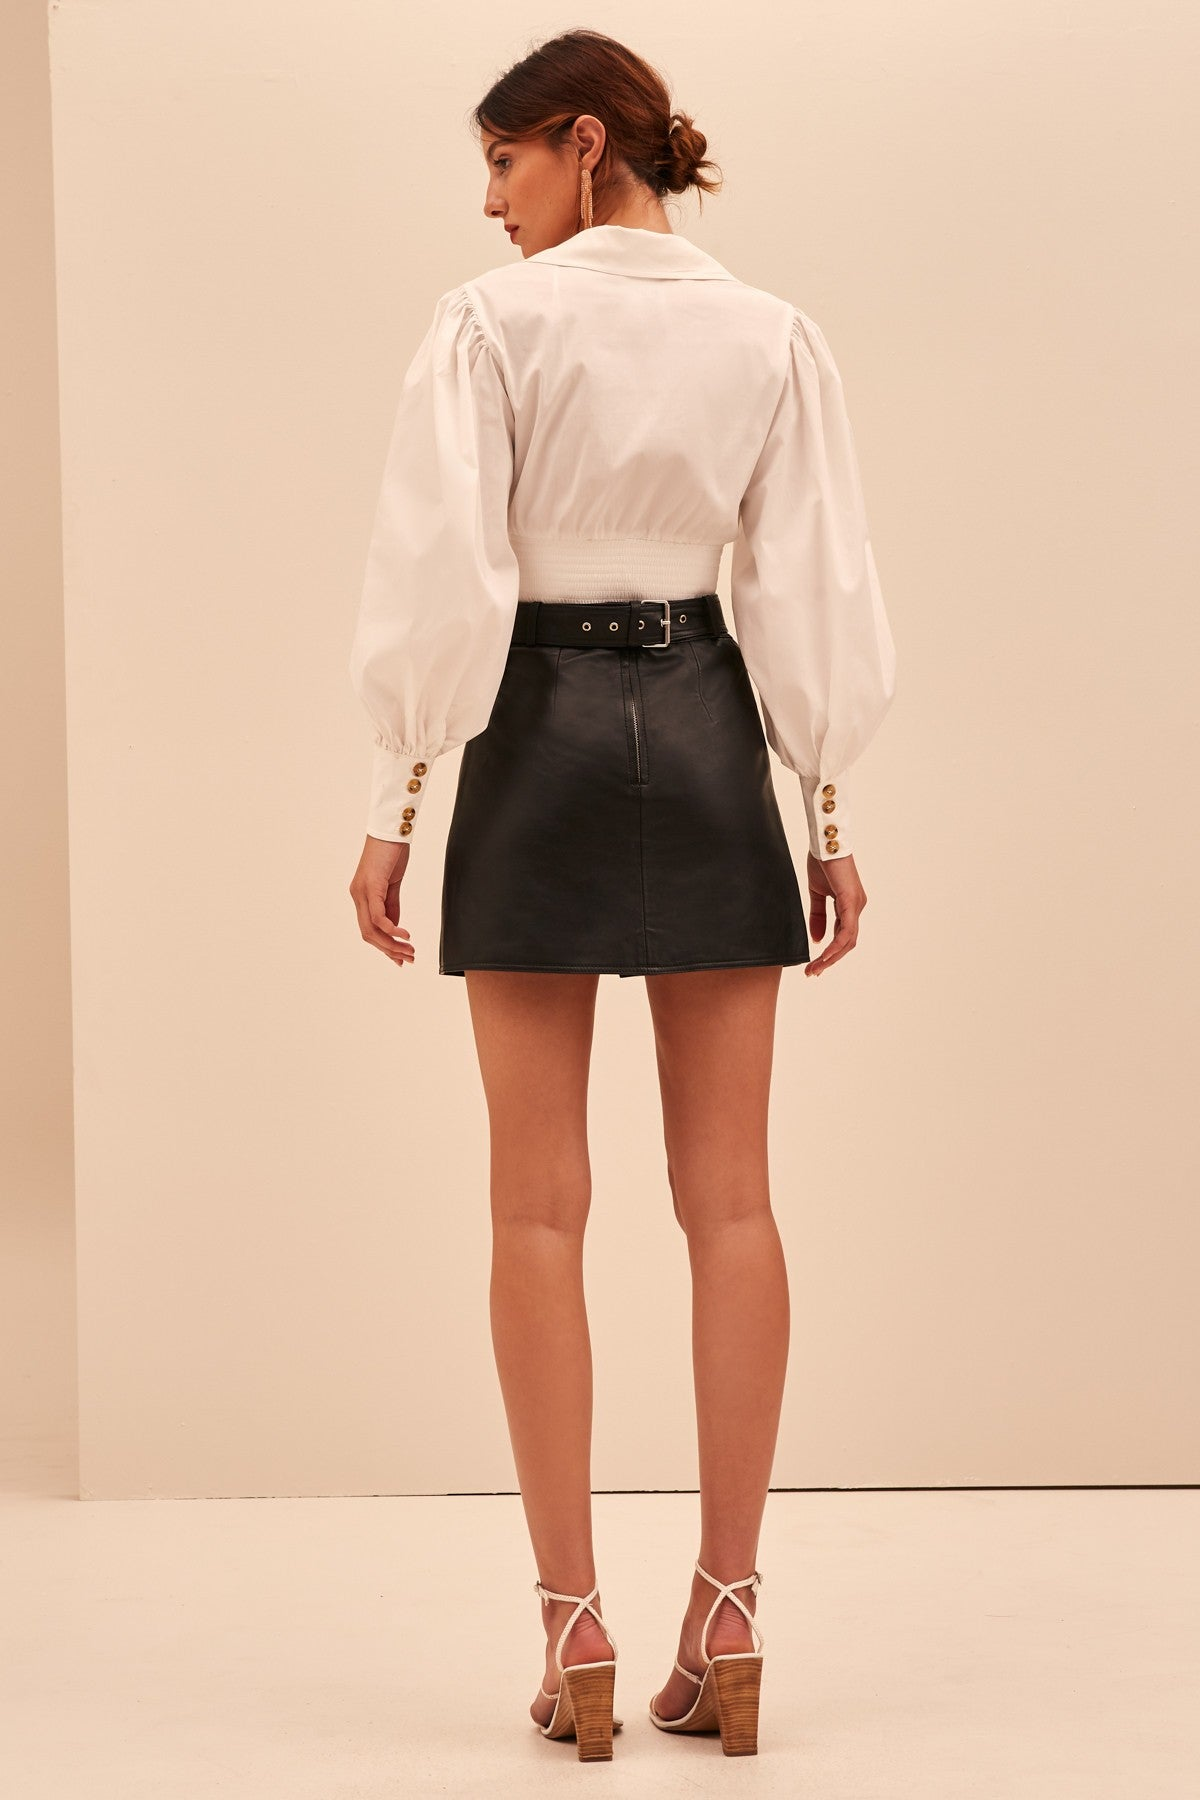 WHILE HERE LEATHER SKIRT black